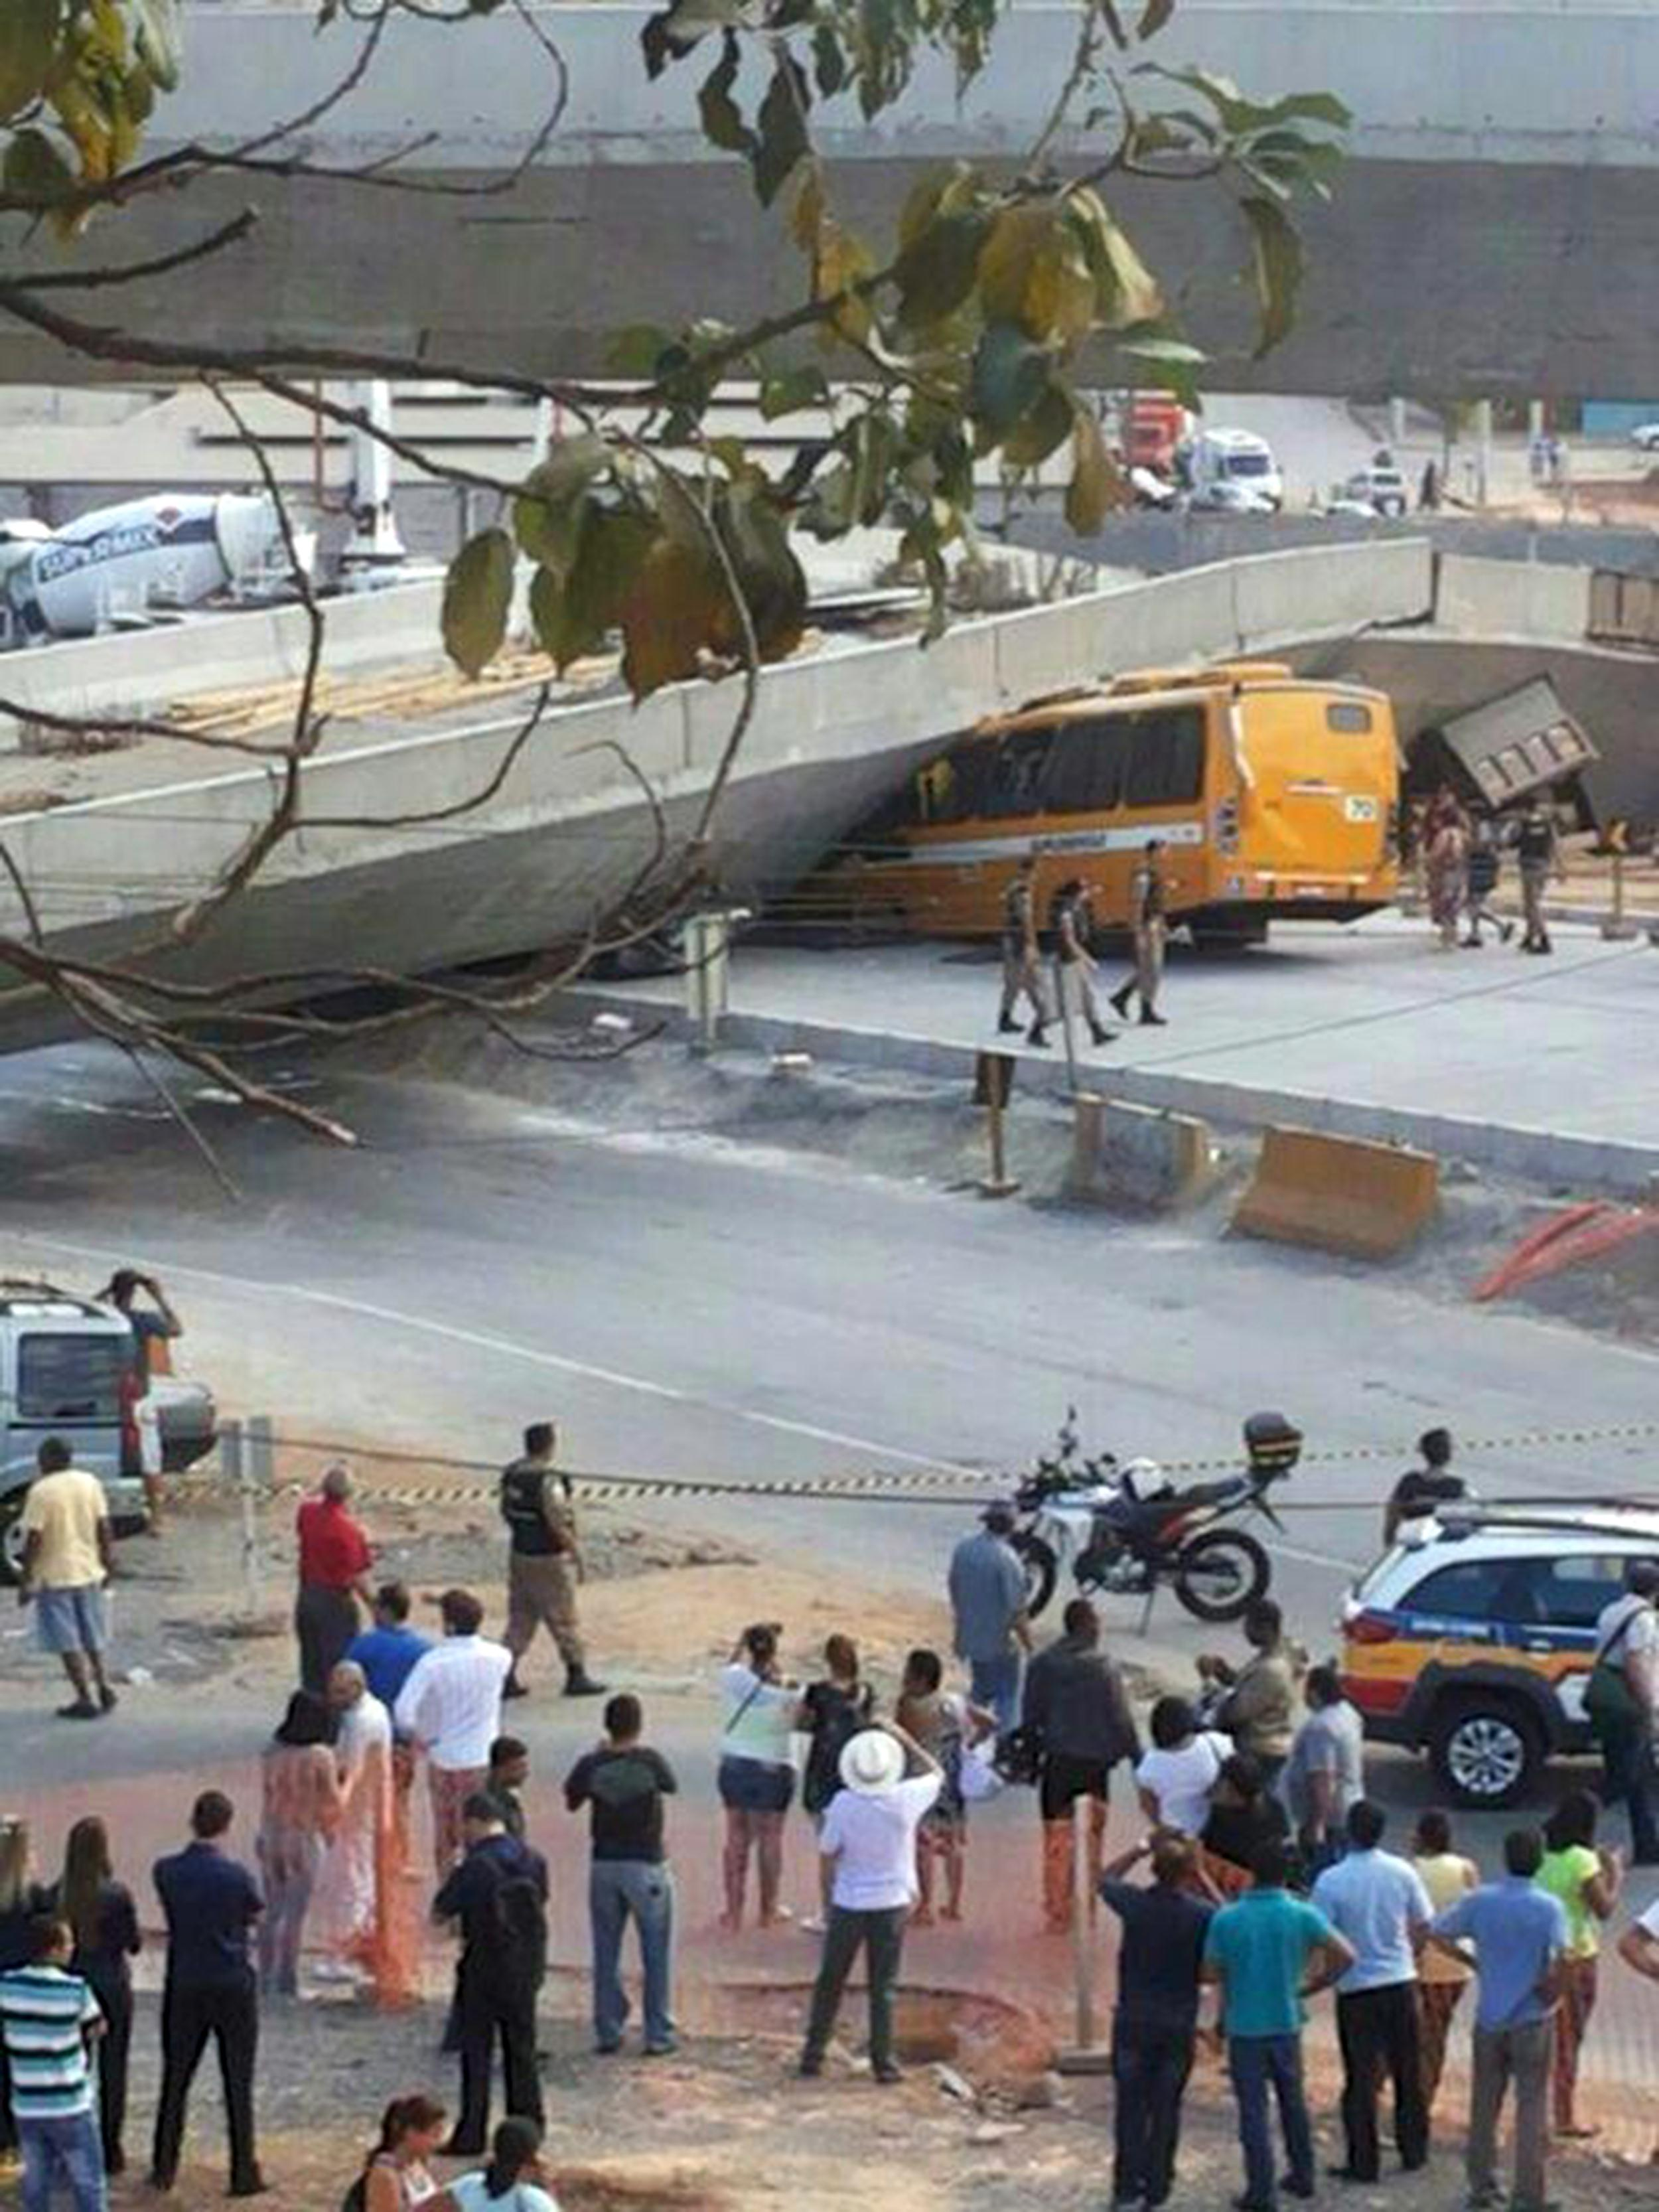 Image: The scene of an overpass collapse in the Brazilian World Cup host coty Belo Horizonte